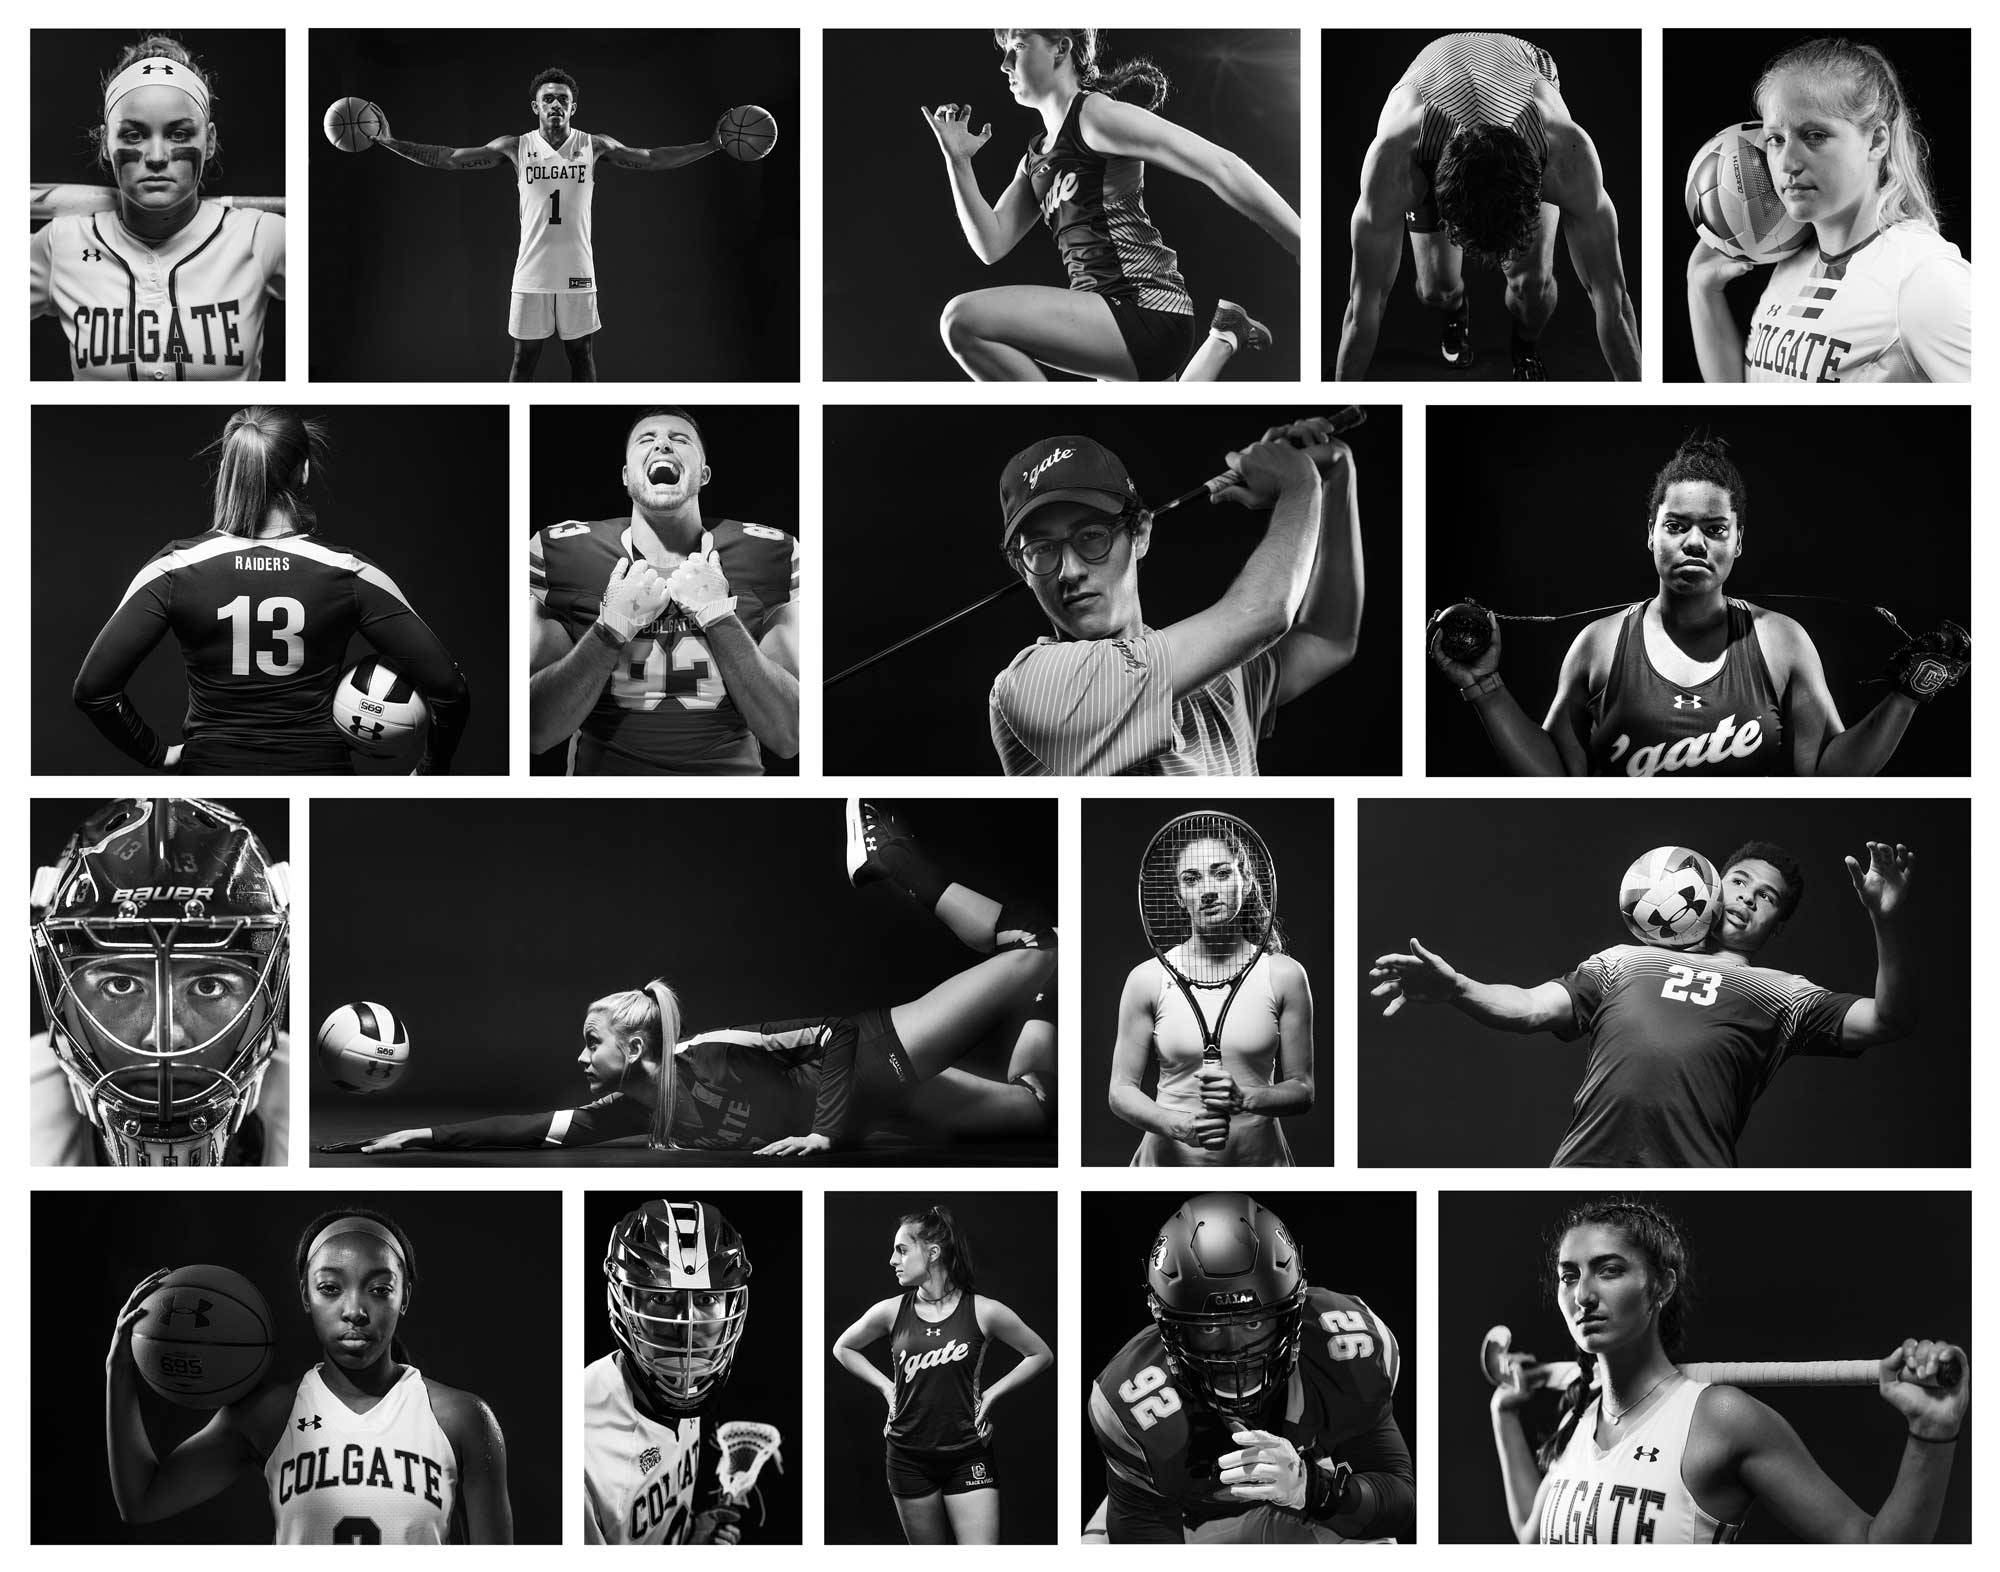 collage of student-athlete portraits